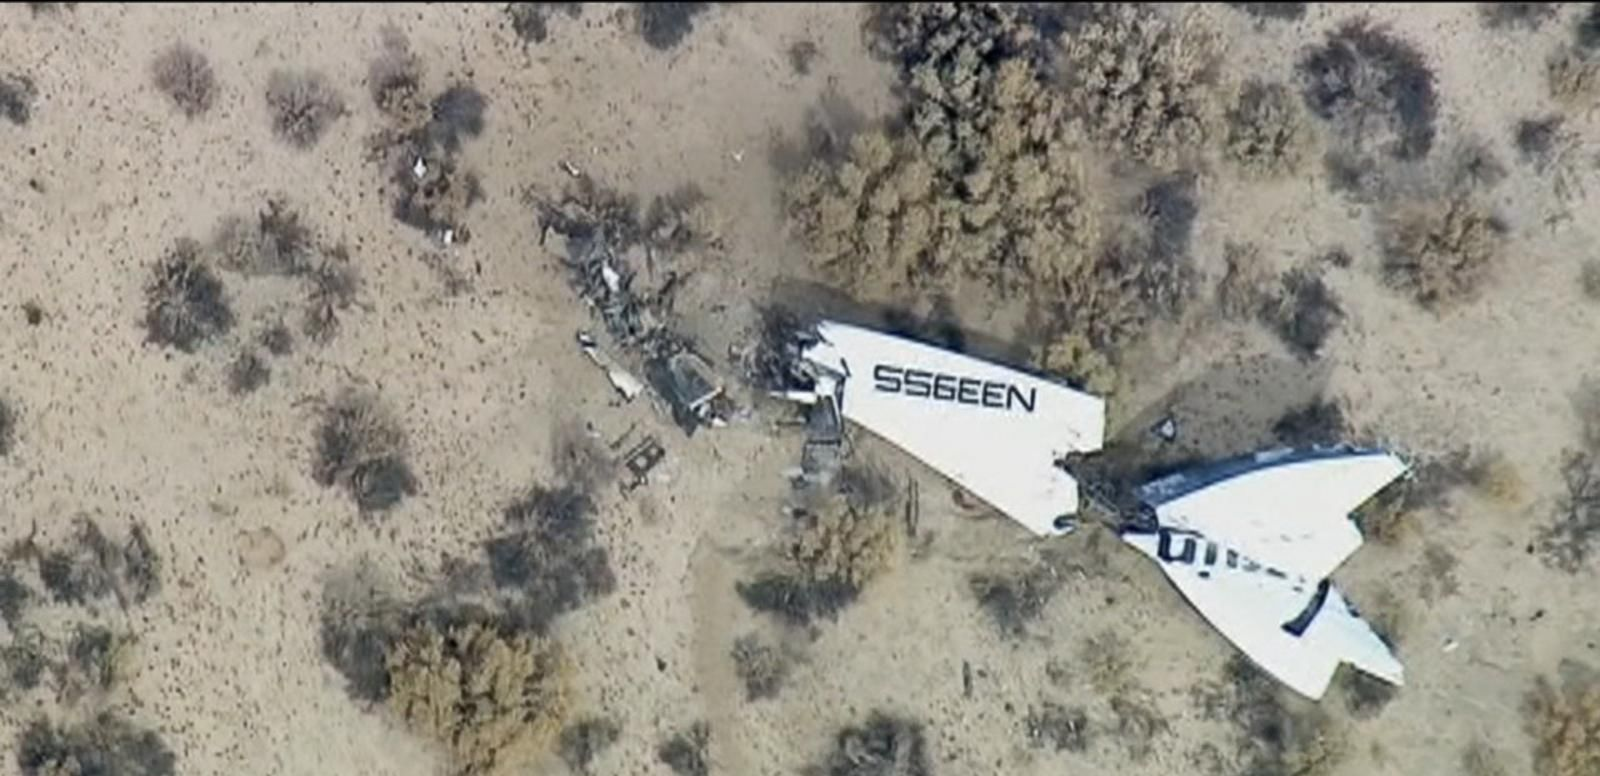 VIDEO: NTSB investigators say the crash in the Mojave Desert was caused by premature moving of the spacecraft's tail wings. Pilot Peter Siebold was injured and co-pilot Michael Alsbury was killed in the October 2014 crash.